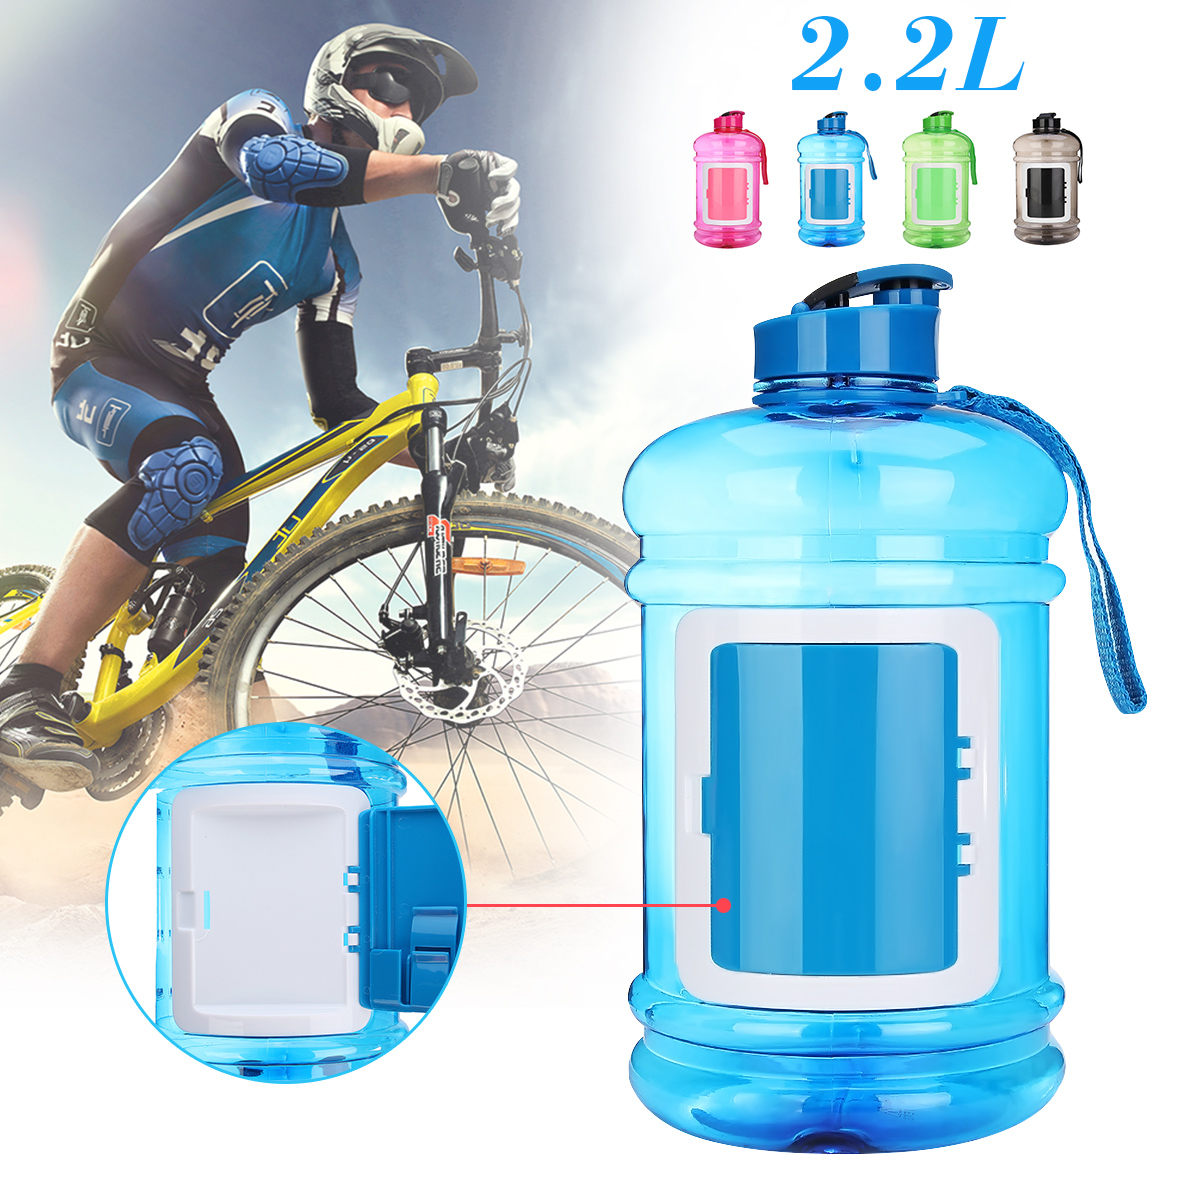 1 Gallon For Fitness Gym Large Capacity Sports Water Bottle With lanyard